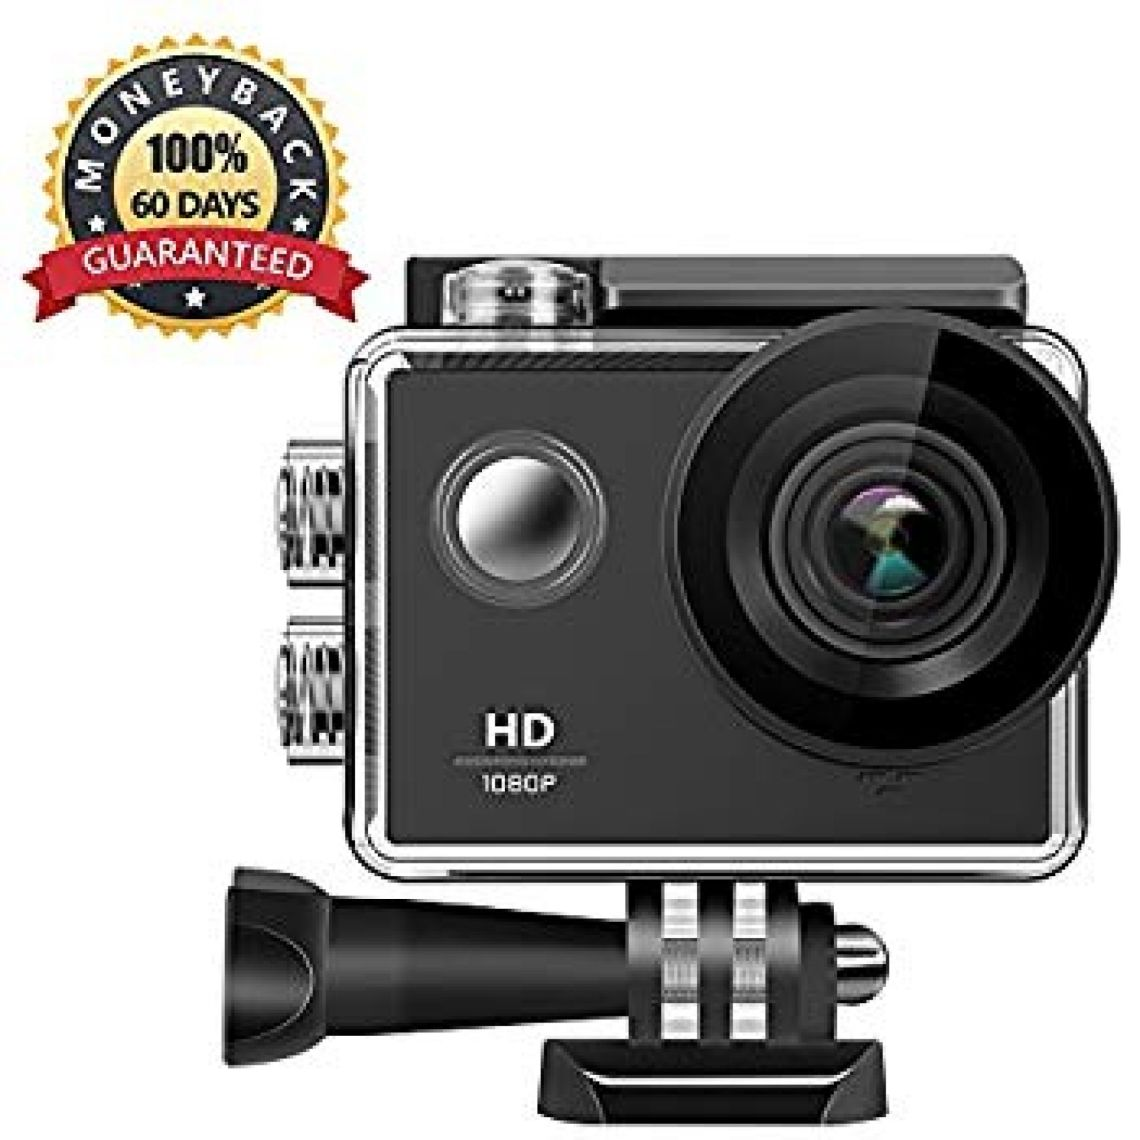 Amazon.com : 1080P Action Camera, WIFI Sports Action Camera Ultra HD Waterproof DV Camcorder Mini Video Camera with Waterproof Case, Rechargeable Battery for Outdoor Sports : Camera & Photo